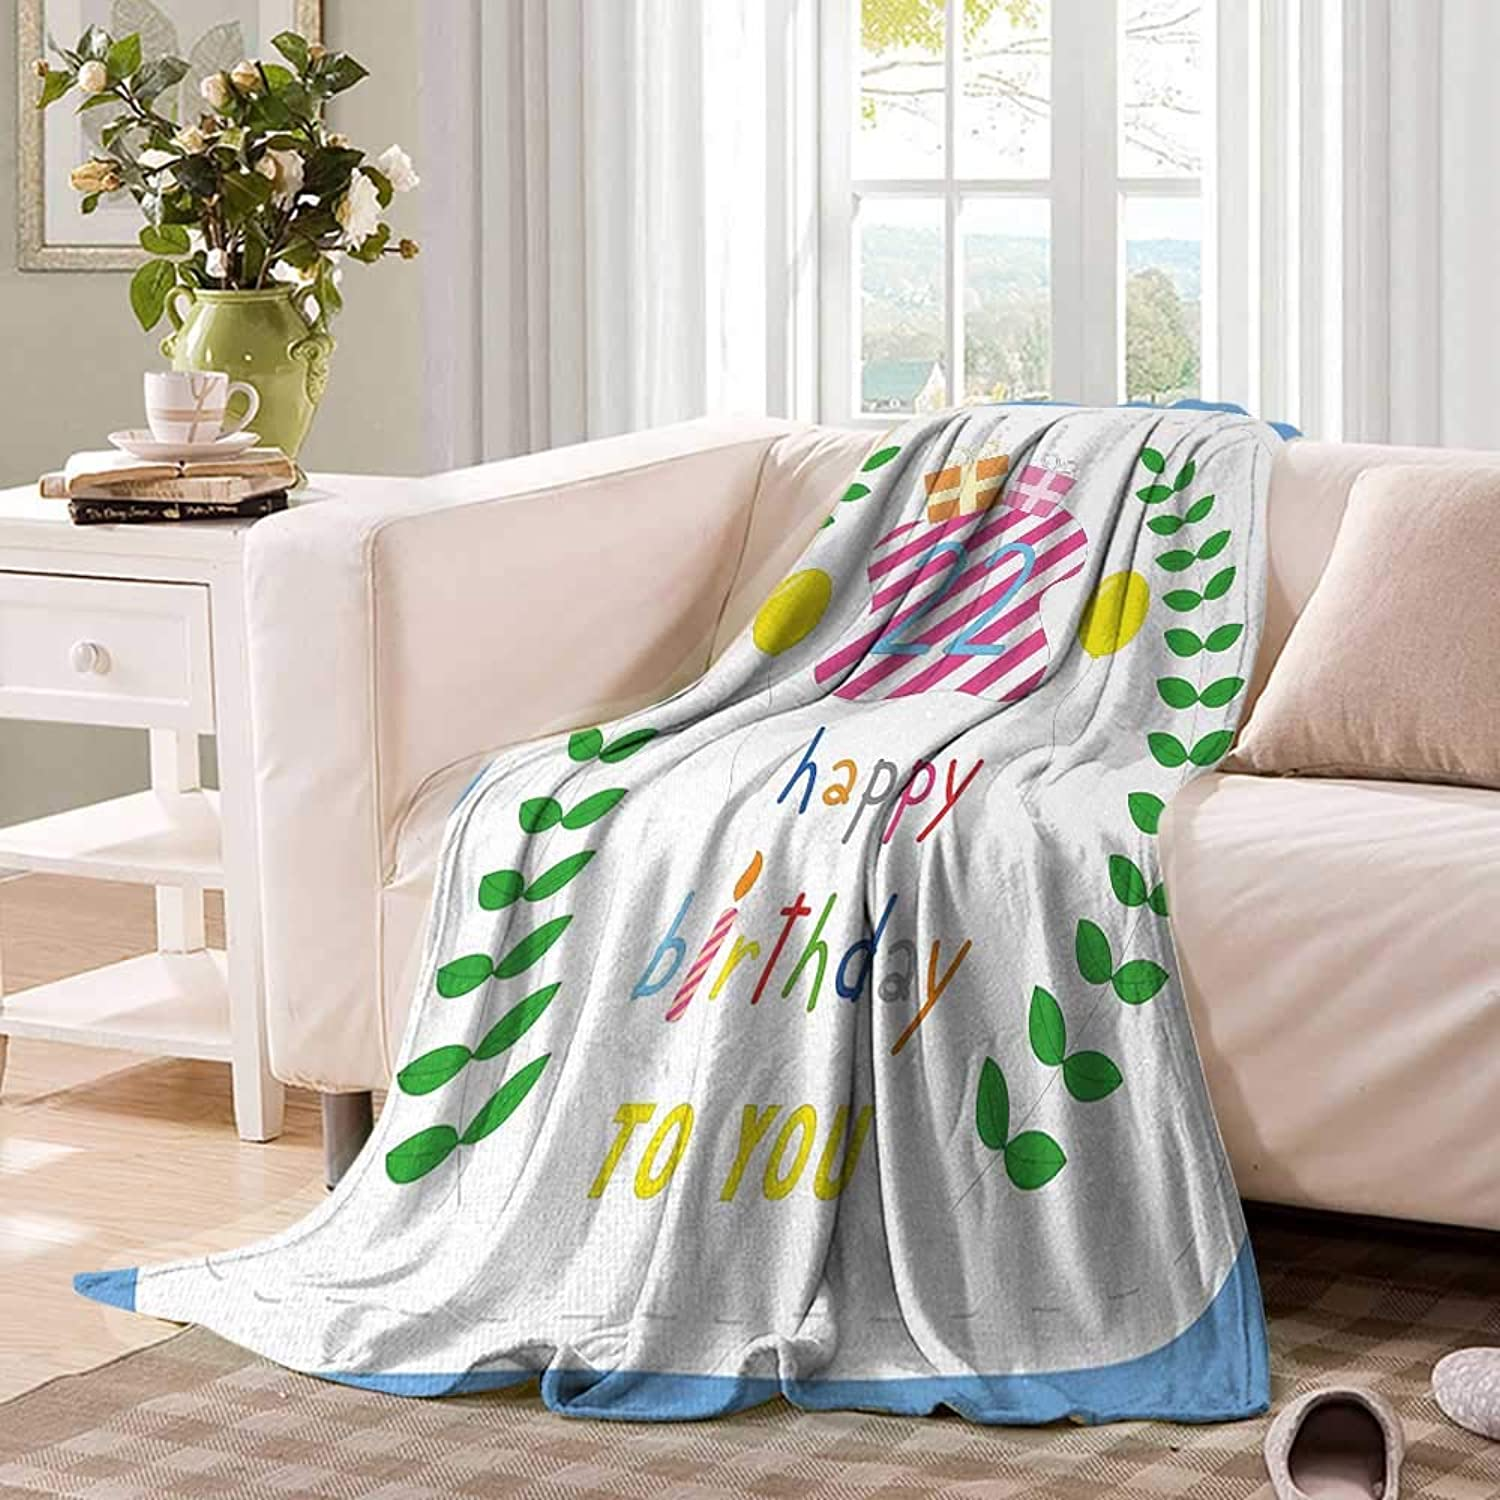 22nd Birthdayblanket Throw blanketAnniversary Kids Girls Party with Leaves and Presents Balloon Party Designoutdoor Blanket 60 x50  Multicolor